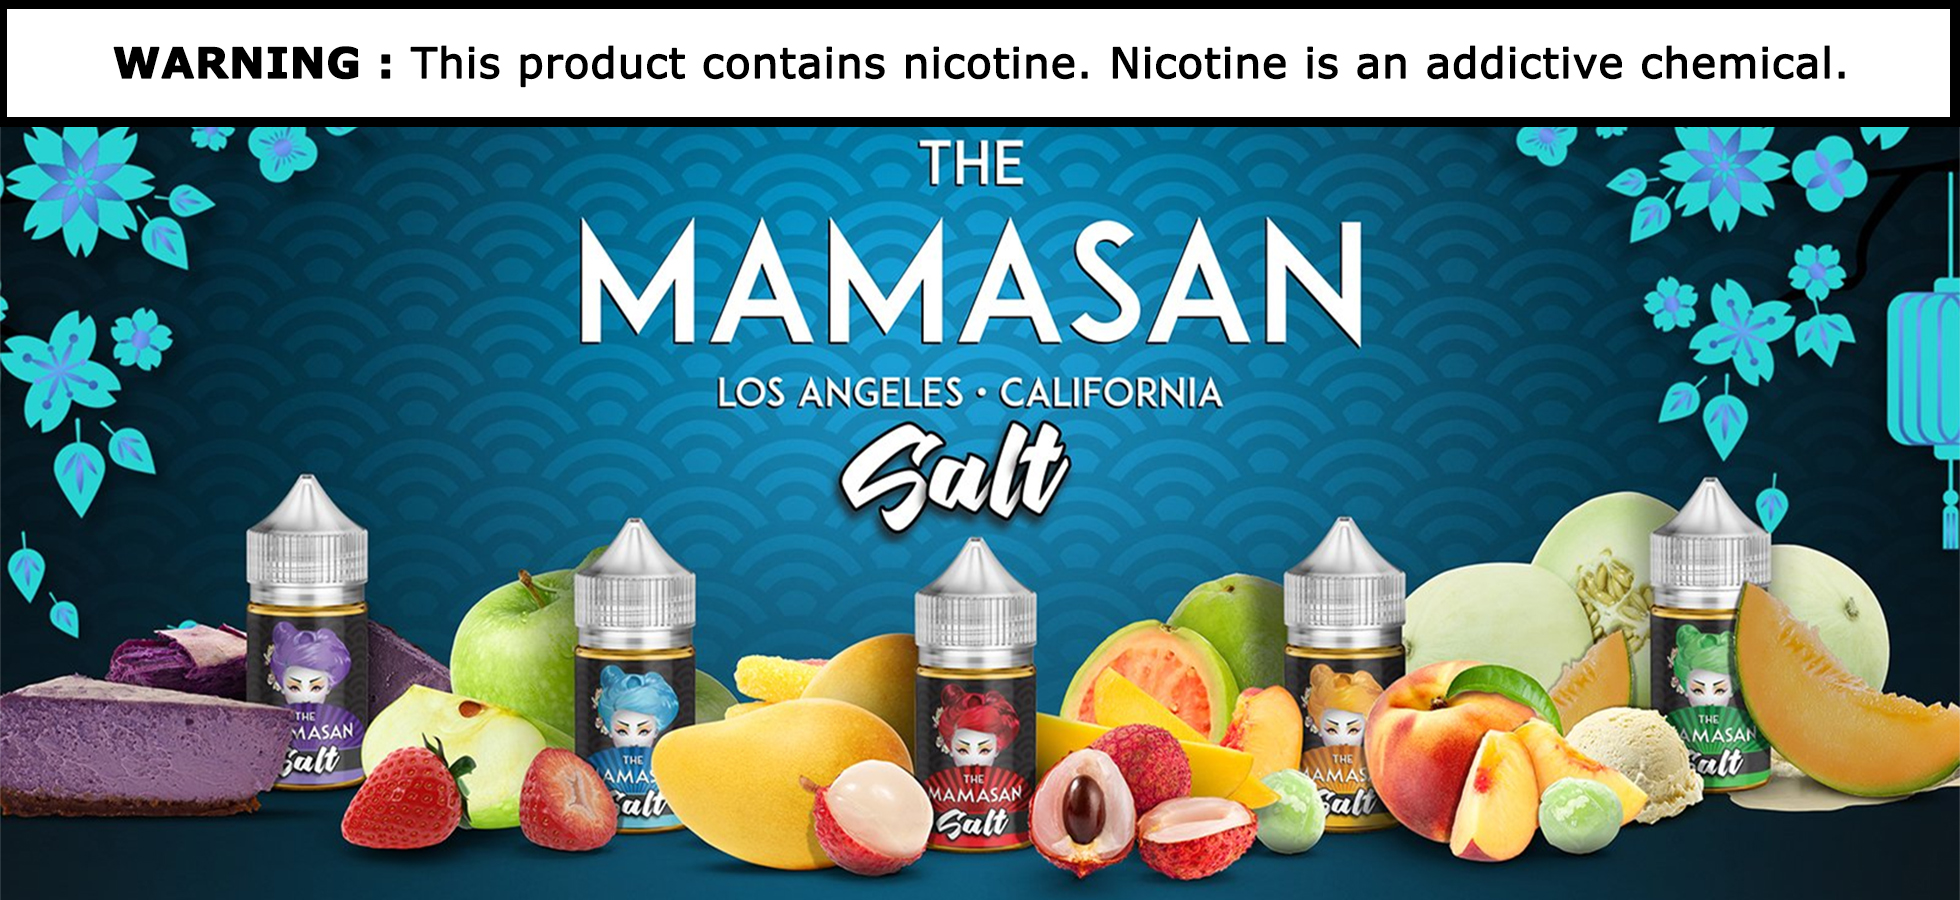 Wholesale Eliquidselectronic Cigarettes Accessories At Lowest The Juice Bar 60ml Eliquid Vape Splash Apple Tea Premium Liquid 1